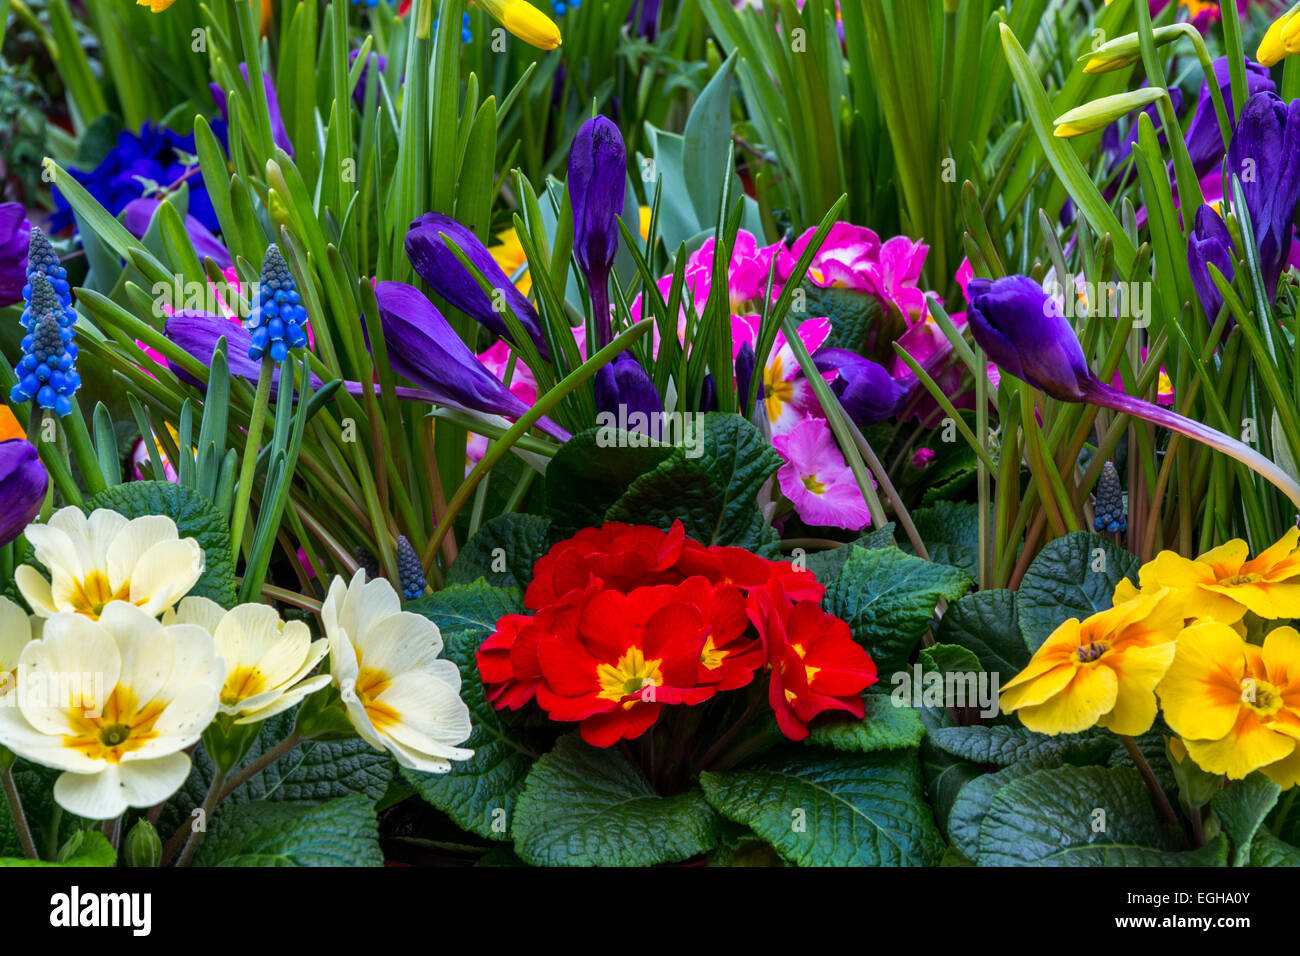 Annual flowers flower bed stock photos annual flowers flower bed a very colorful garden made up of primula daffodil crocus and grape hyacinth izmirmasajfo